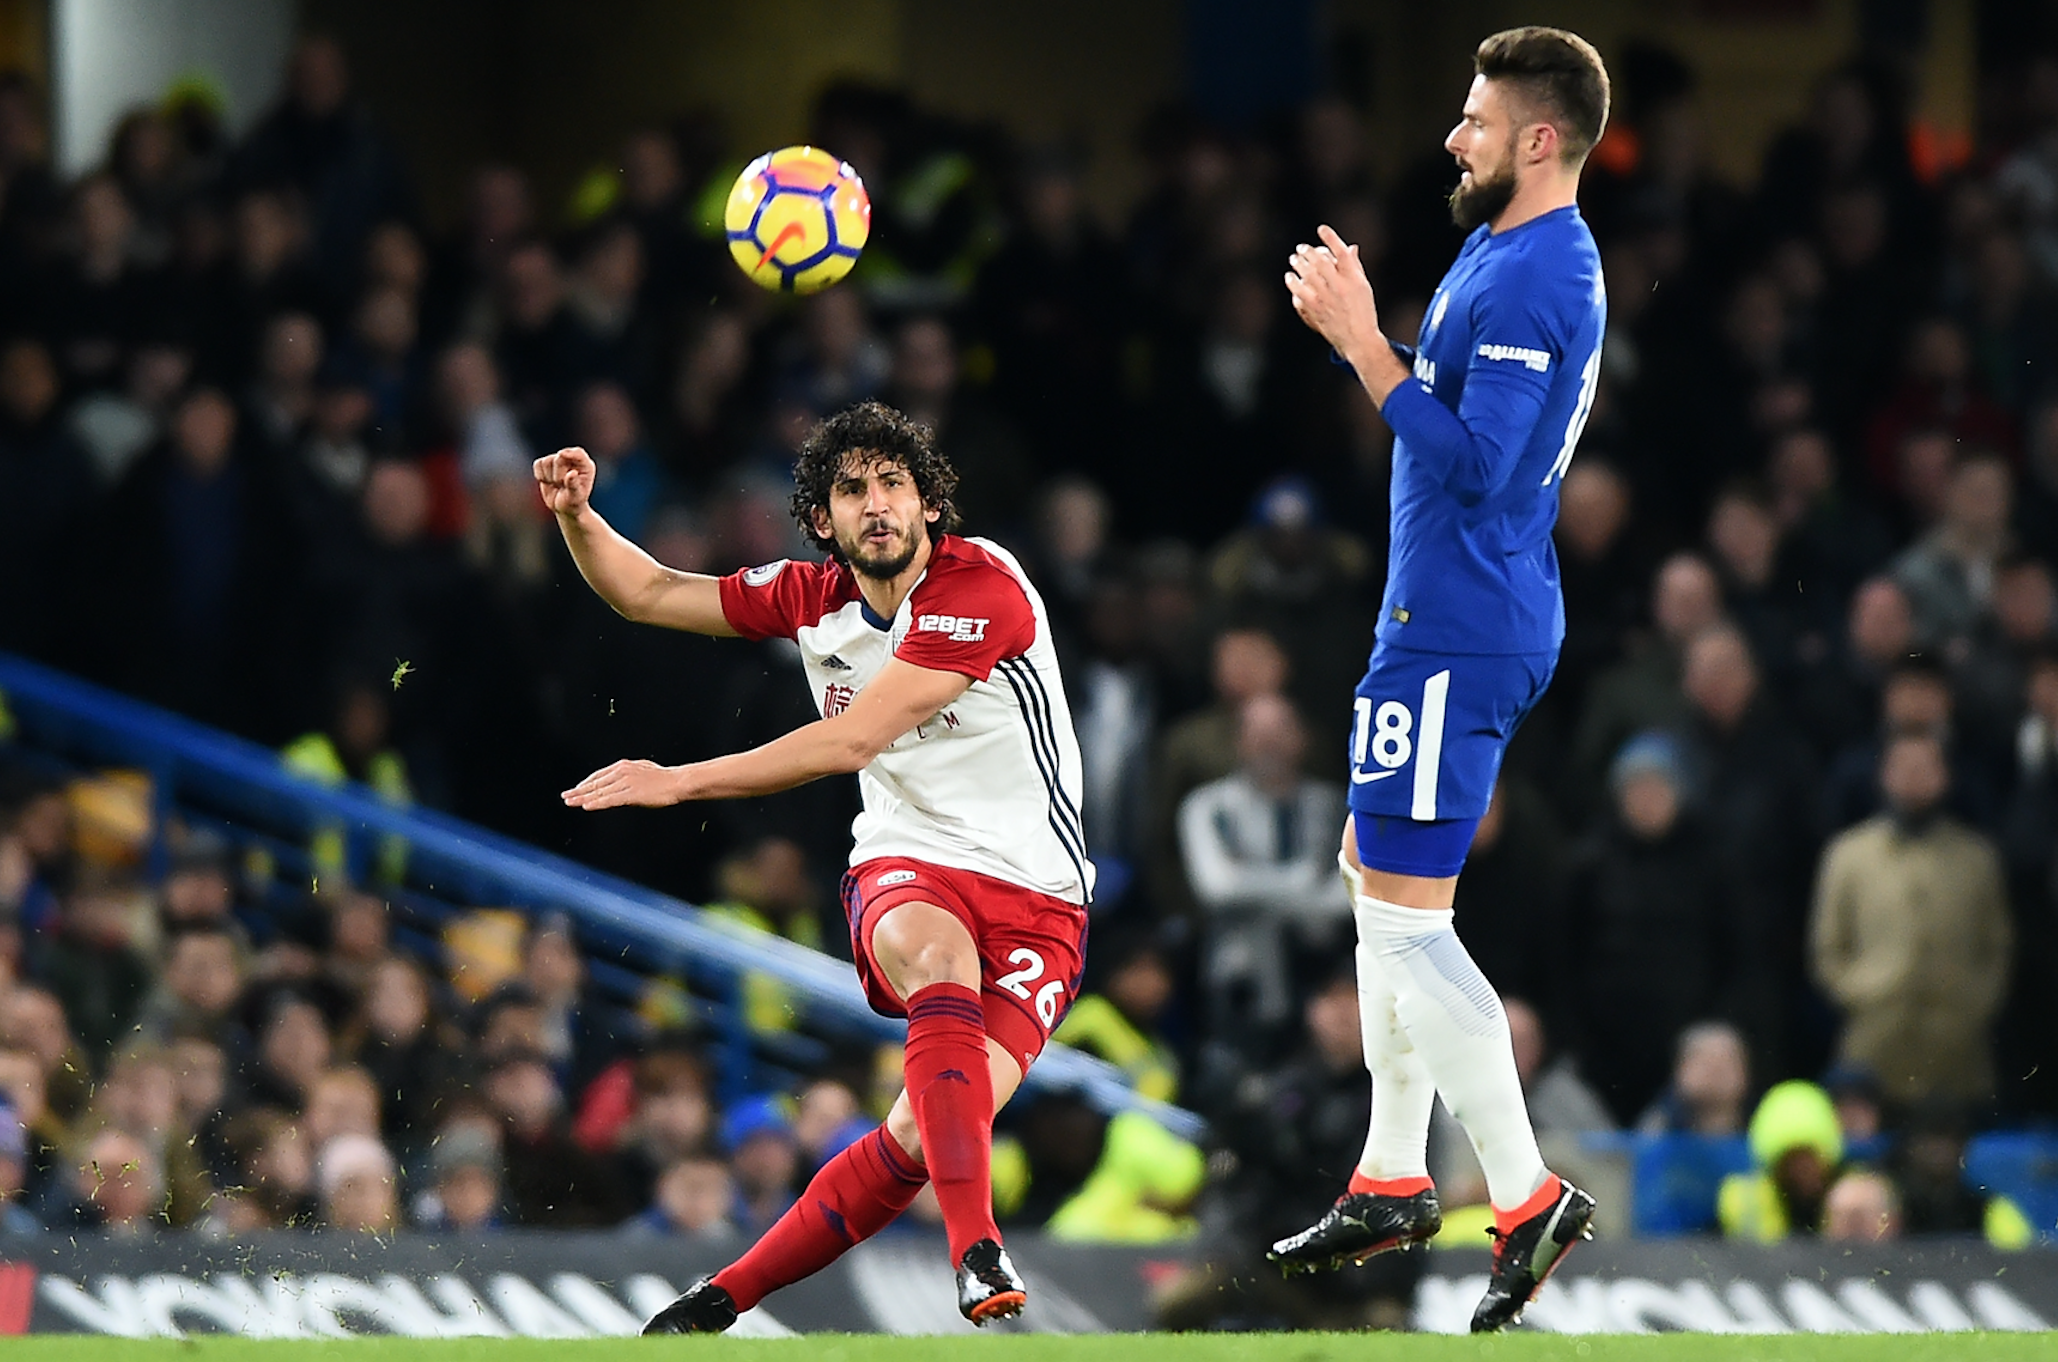 West Bromwich Albion's Ahmed Hegazi clears over Chelsea's Olivier Giroud during the Premier League match between Chelsea and West Bromwich Albion (WBA) at Stamford Bridge, London, England on 12 Jan 2018